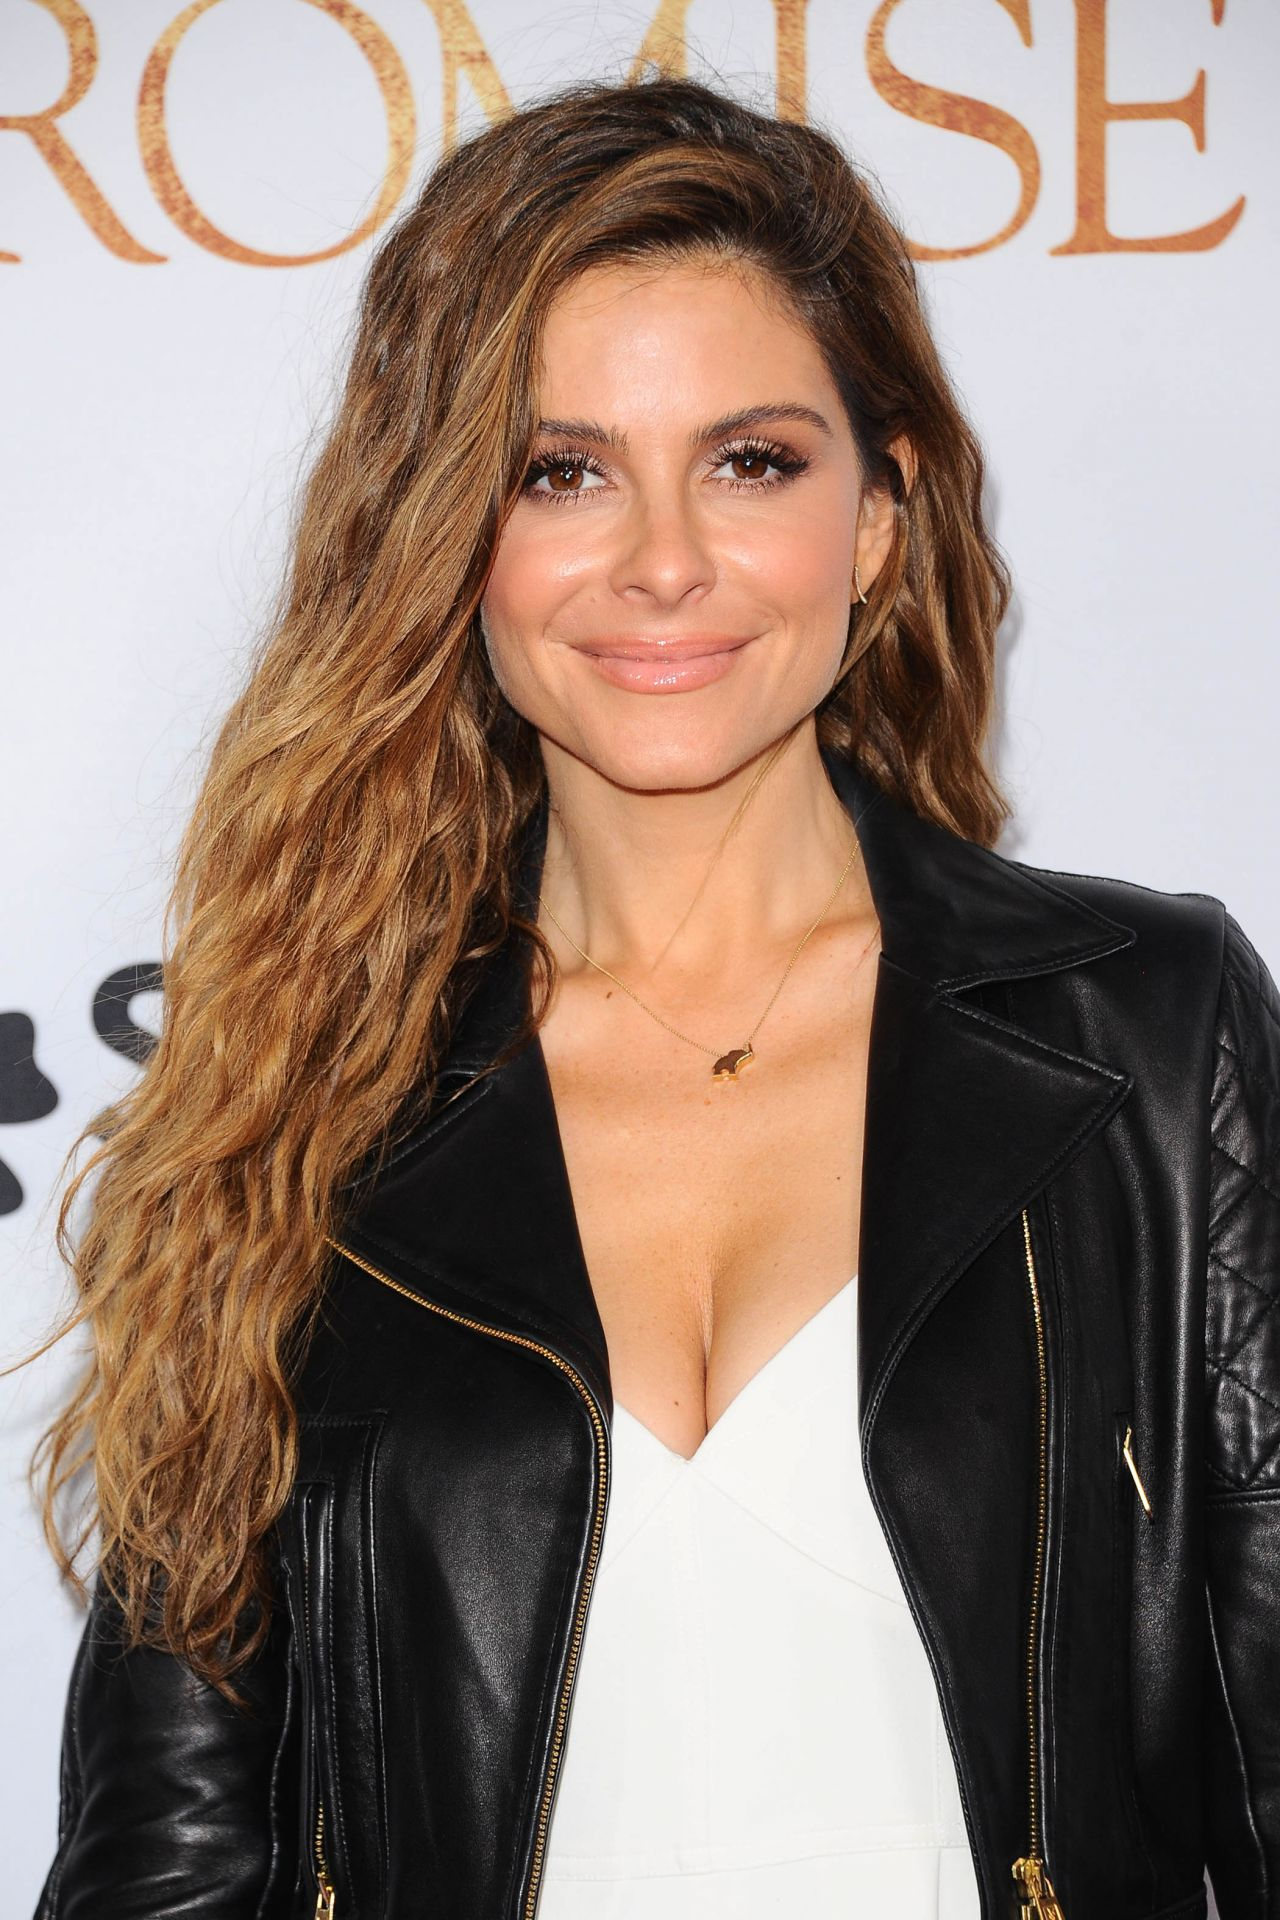 Maria Menounos nudes (95 photo), images Ass, Twitter, butt 2019